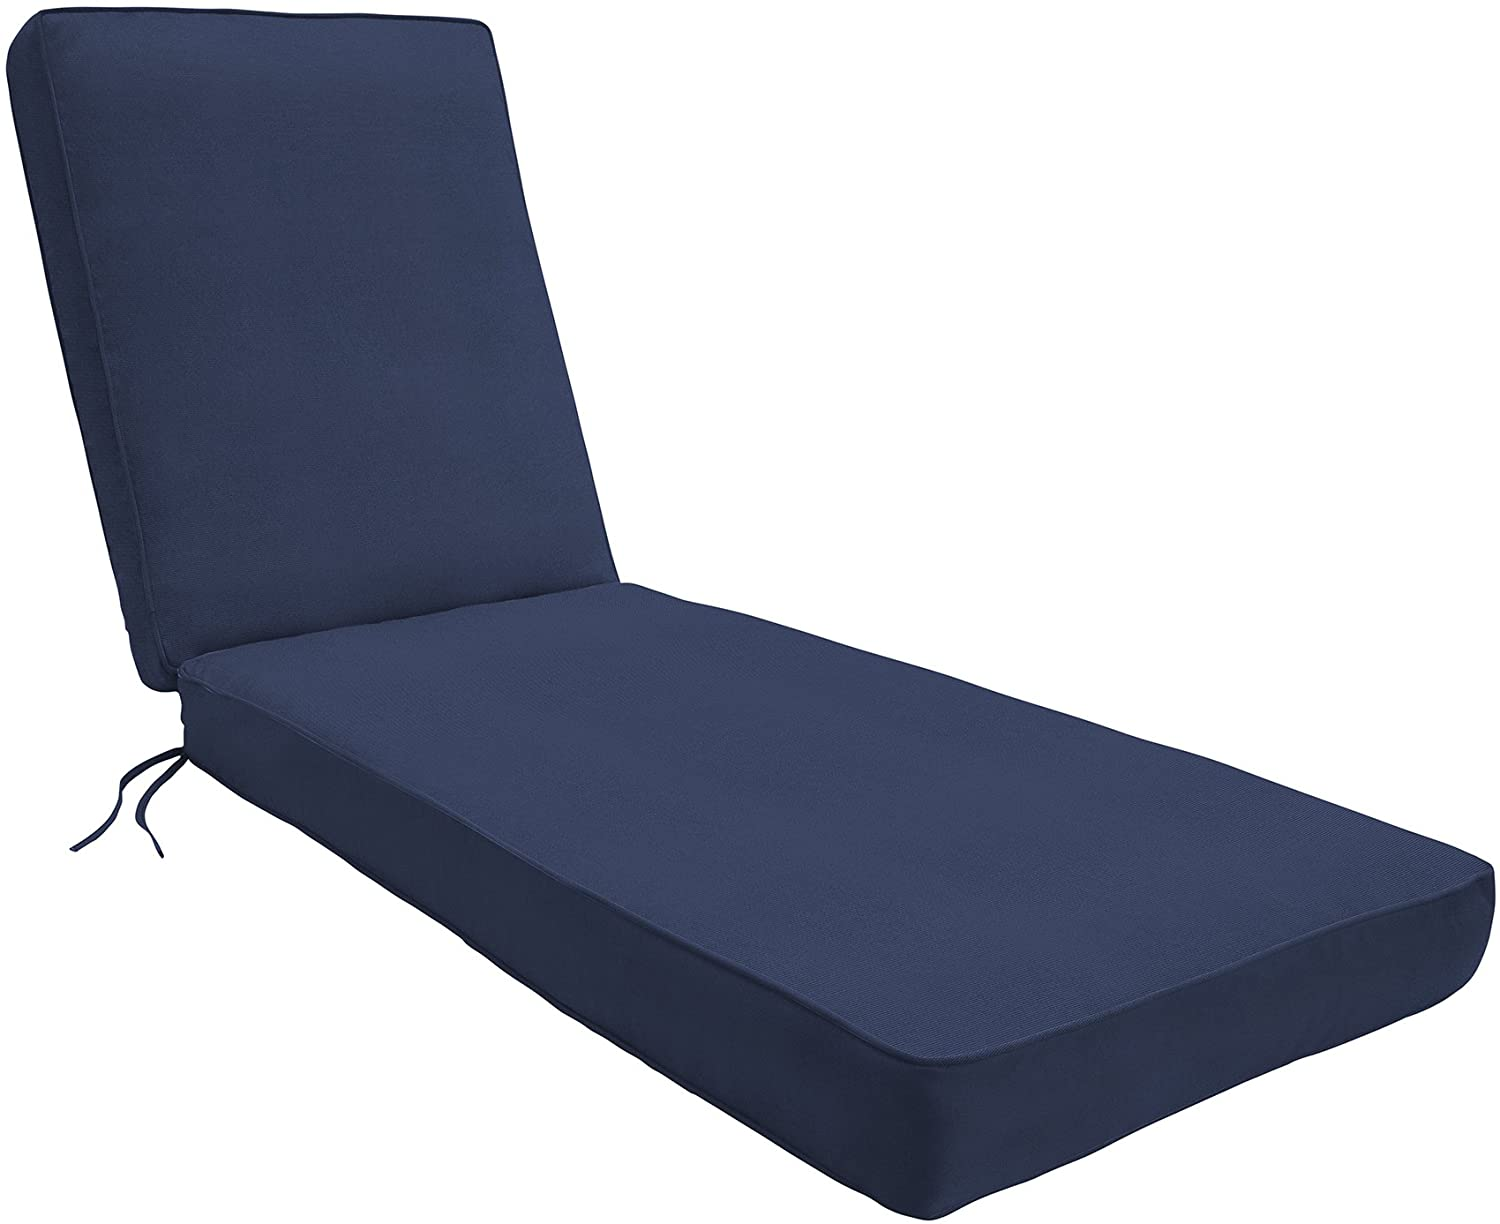 Eddie Bauer Home Chaise Double Piped 23